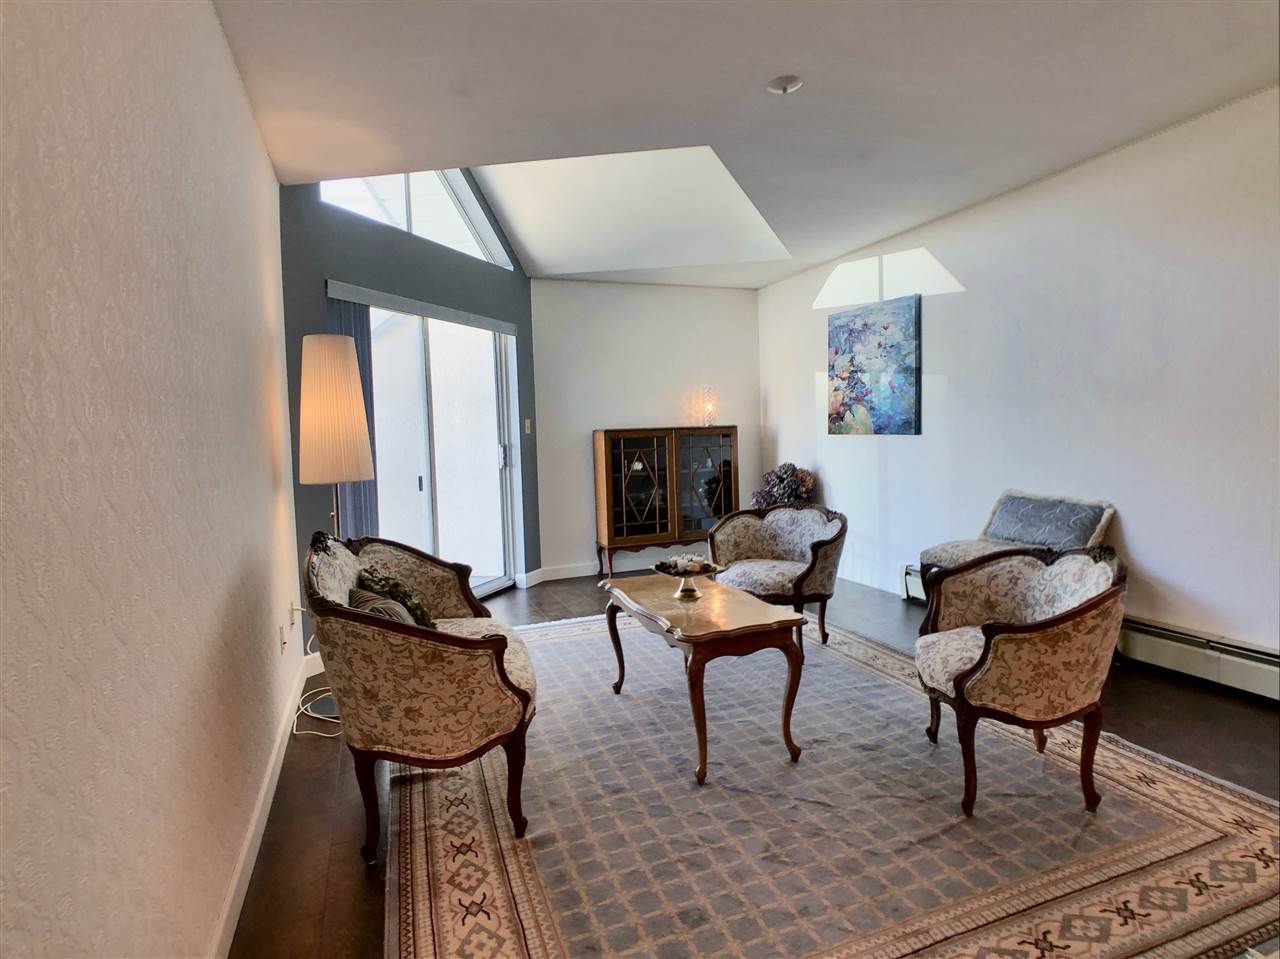 """Main Photo: 311 31930 OLD YALE Road in Abbotsford: Abbotsford West Condo for sale in """"Royal Court"""" : MLS®# R2316357"""